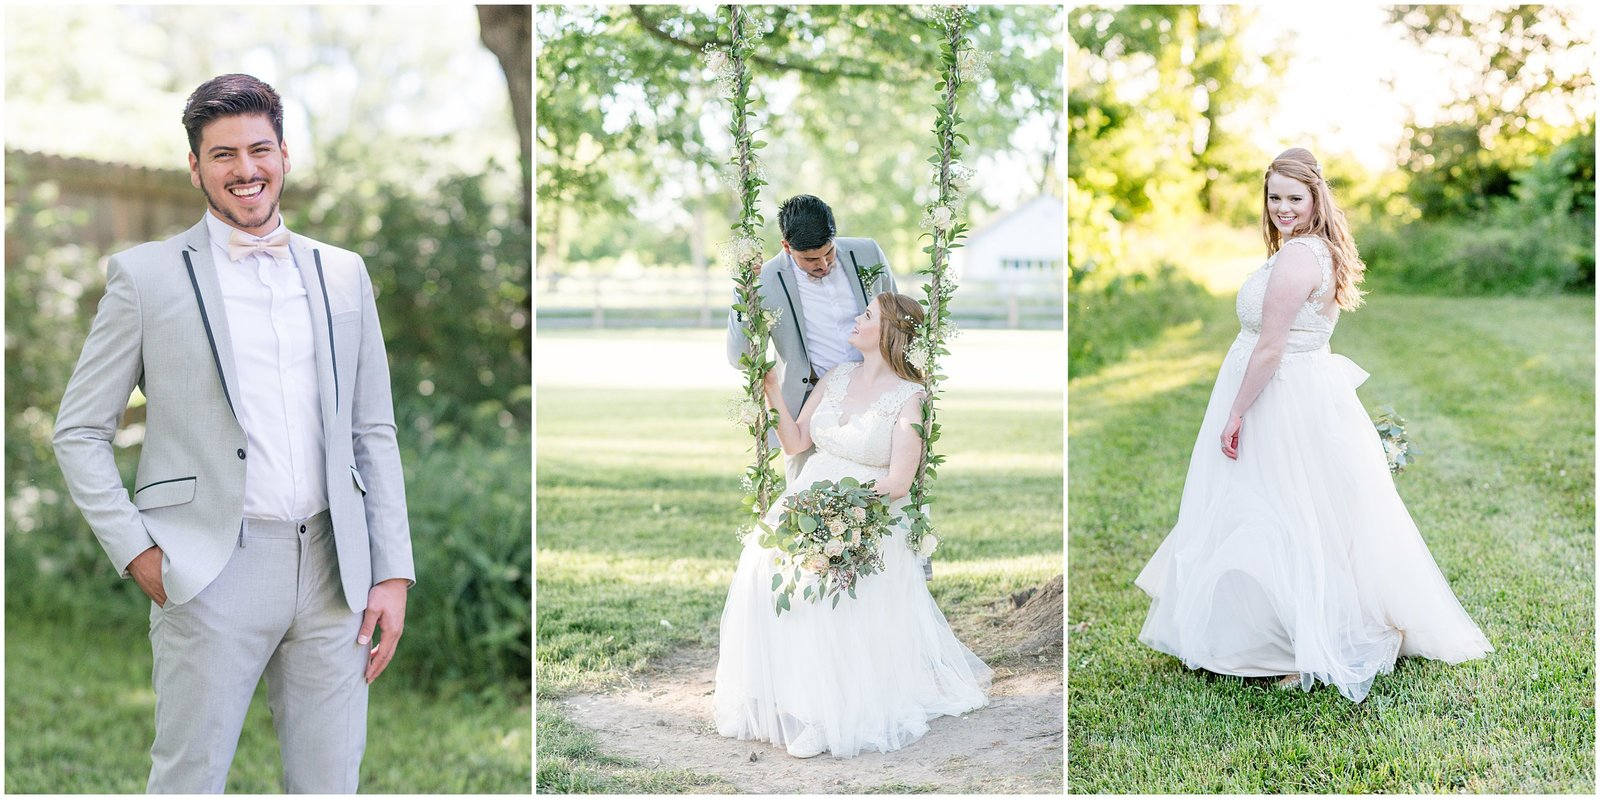 Light and Airy Wedding Photos in Indianapolis